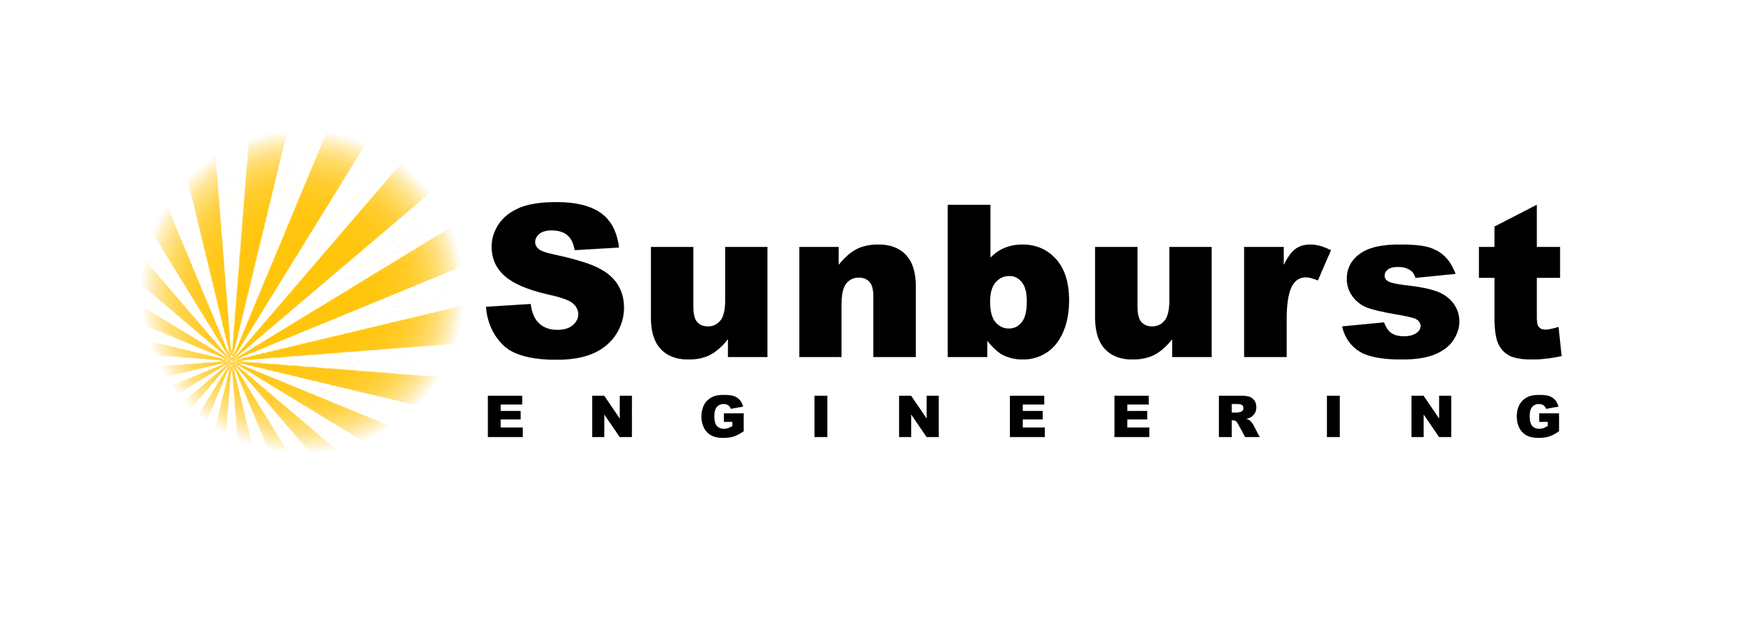 Sunburst Engineering